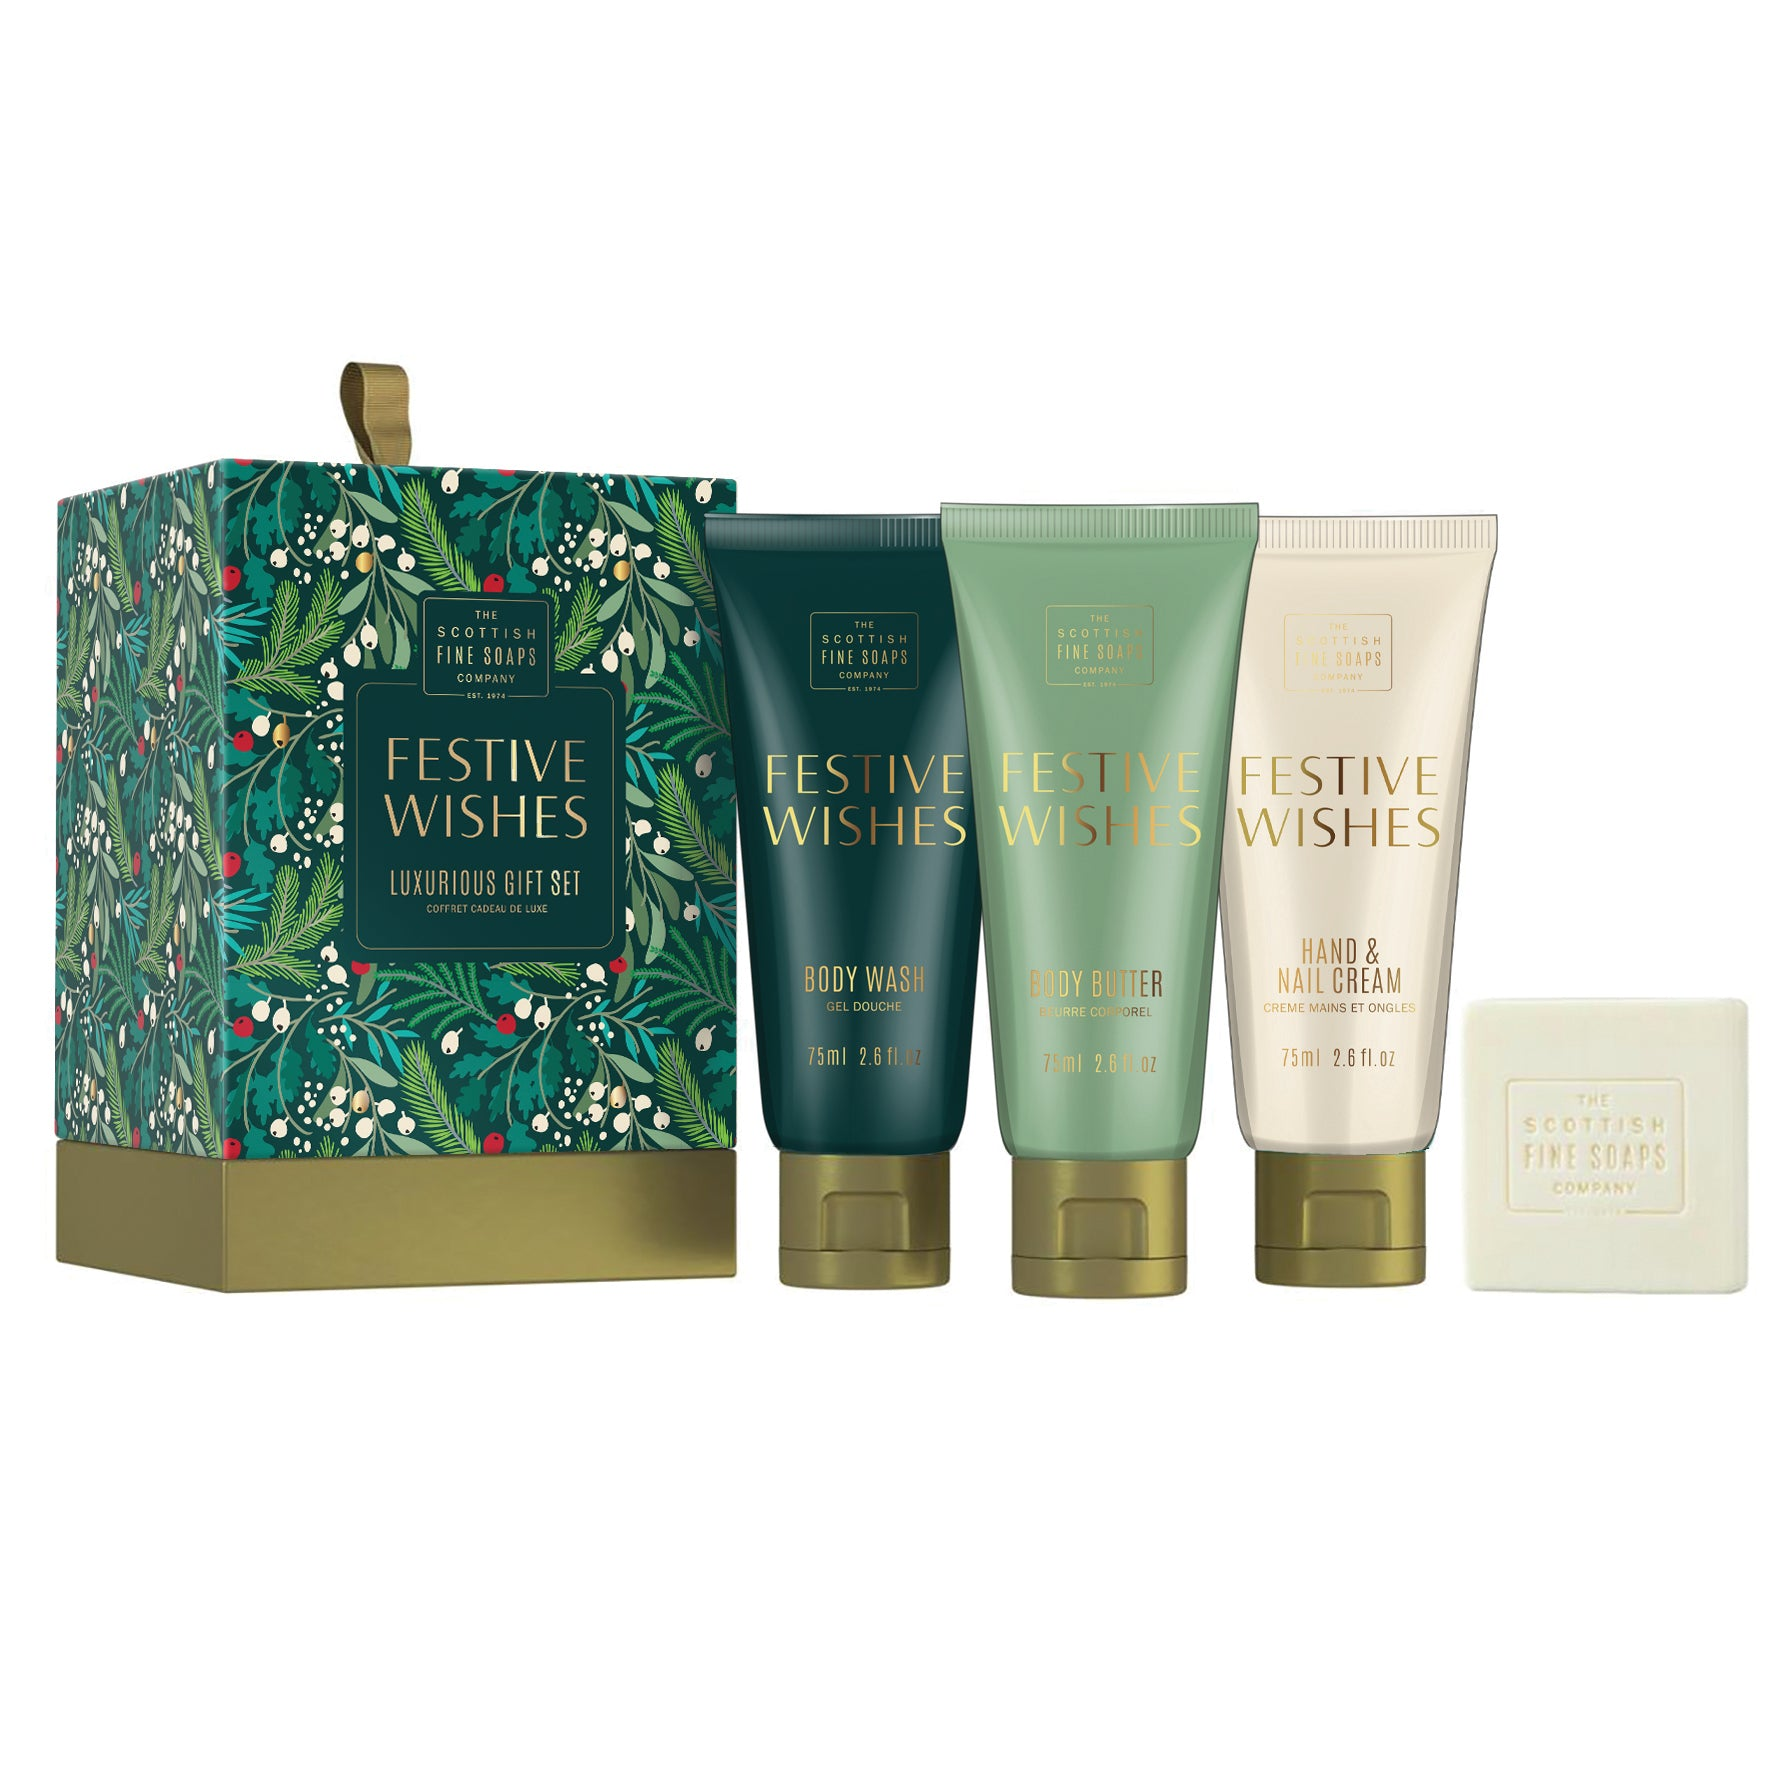 Festive Wishes Luxurious Gift Set